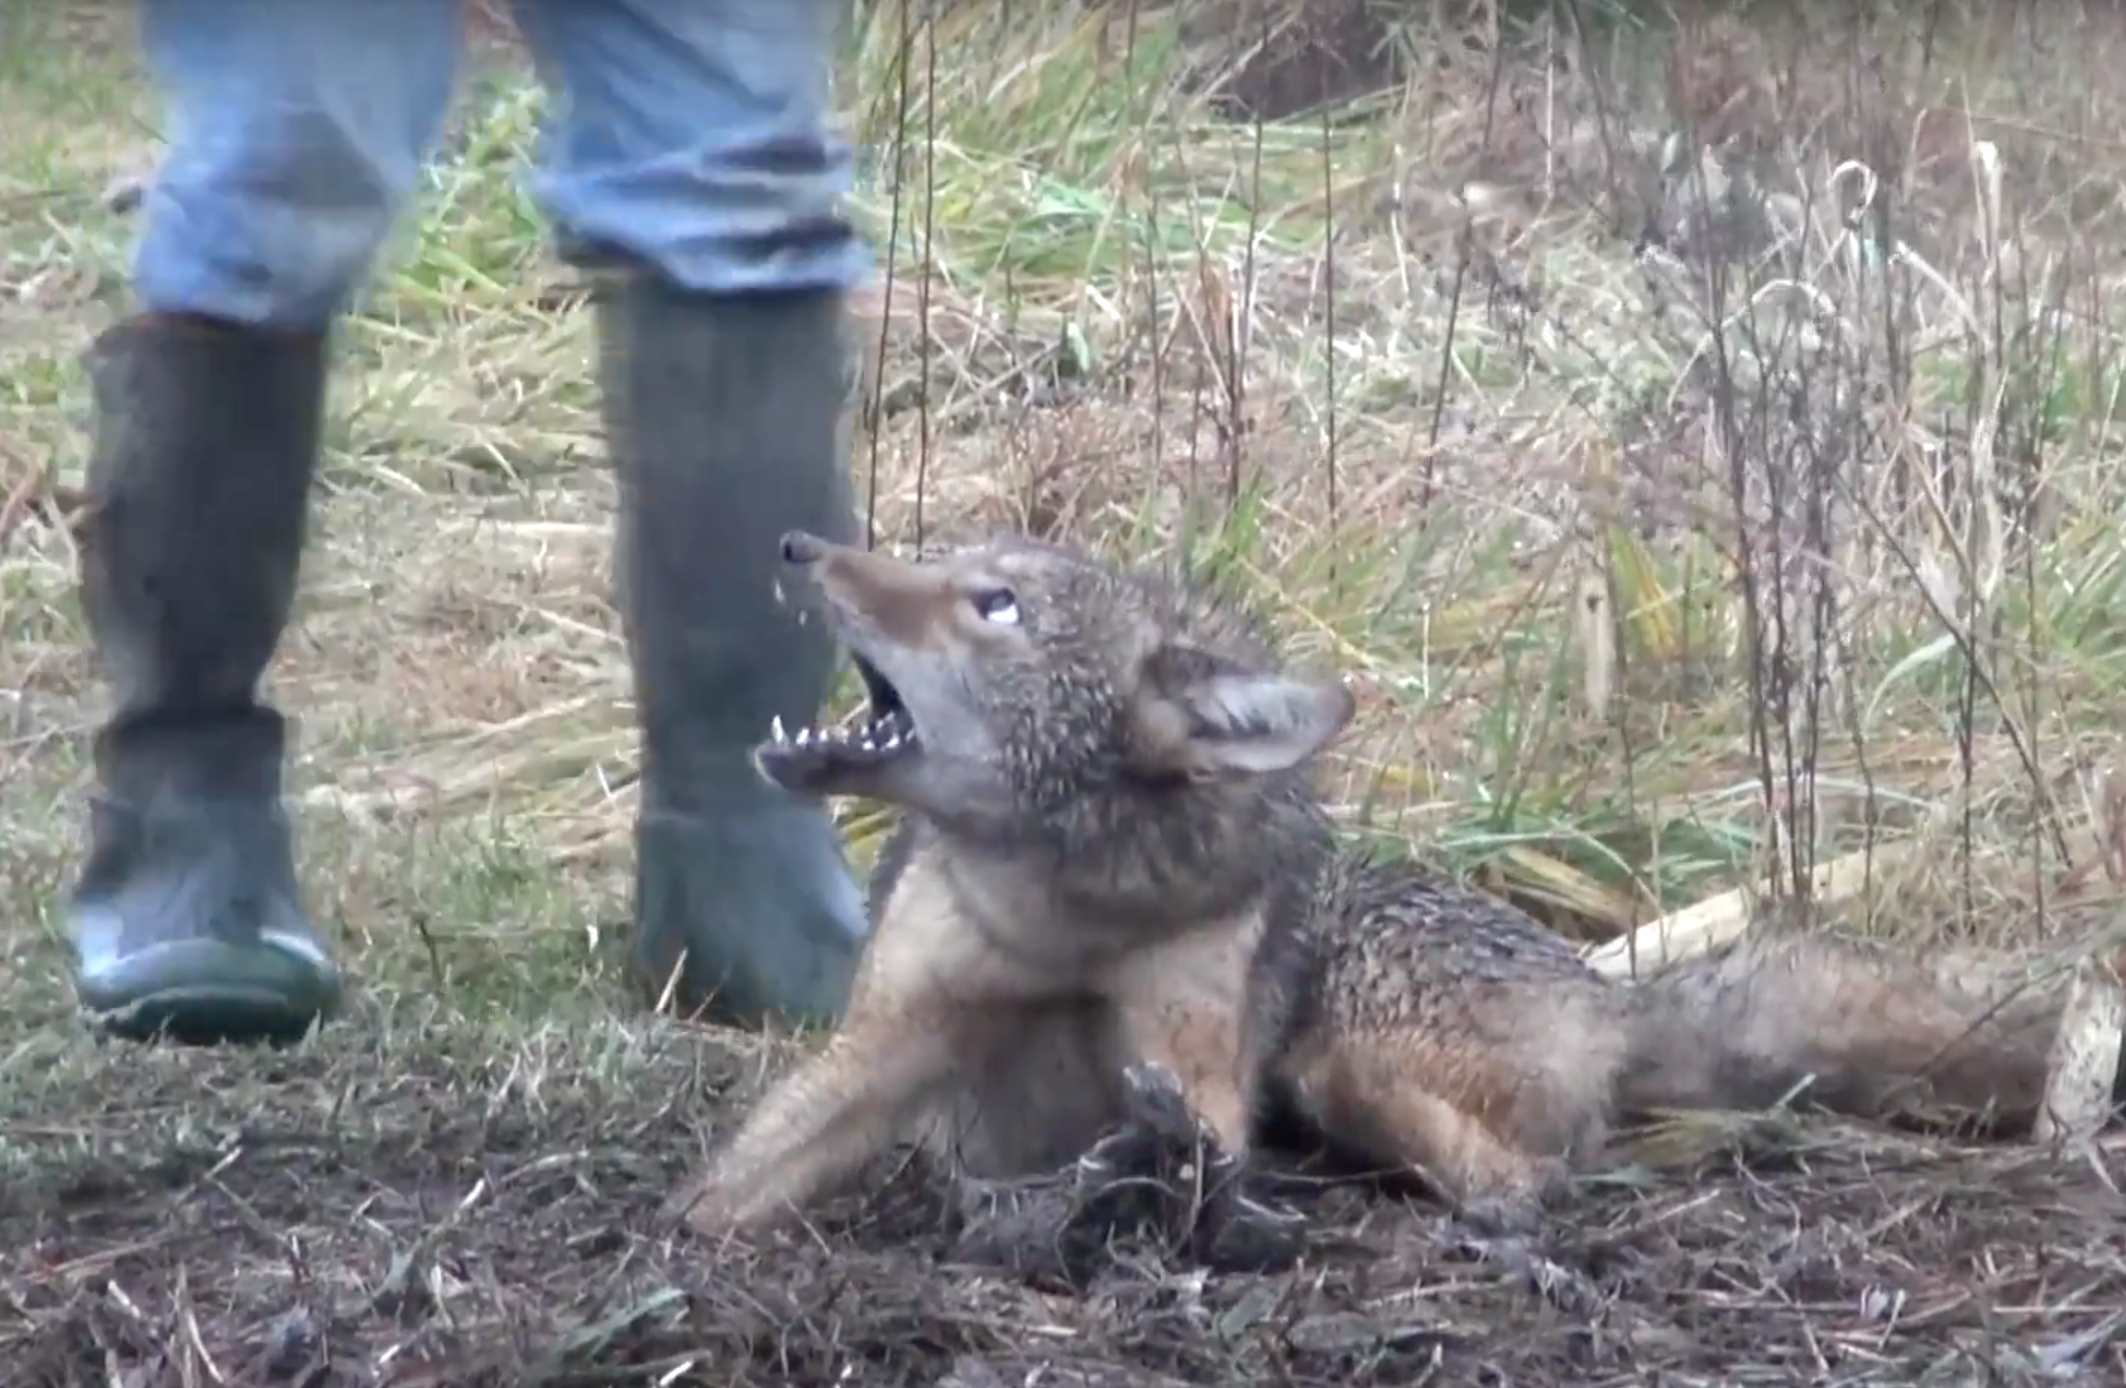 A trapped coyote who will be killed for Canada Goose